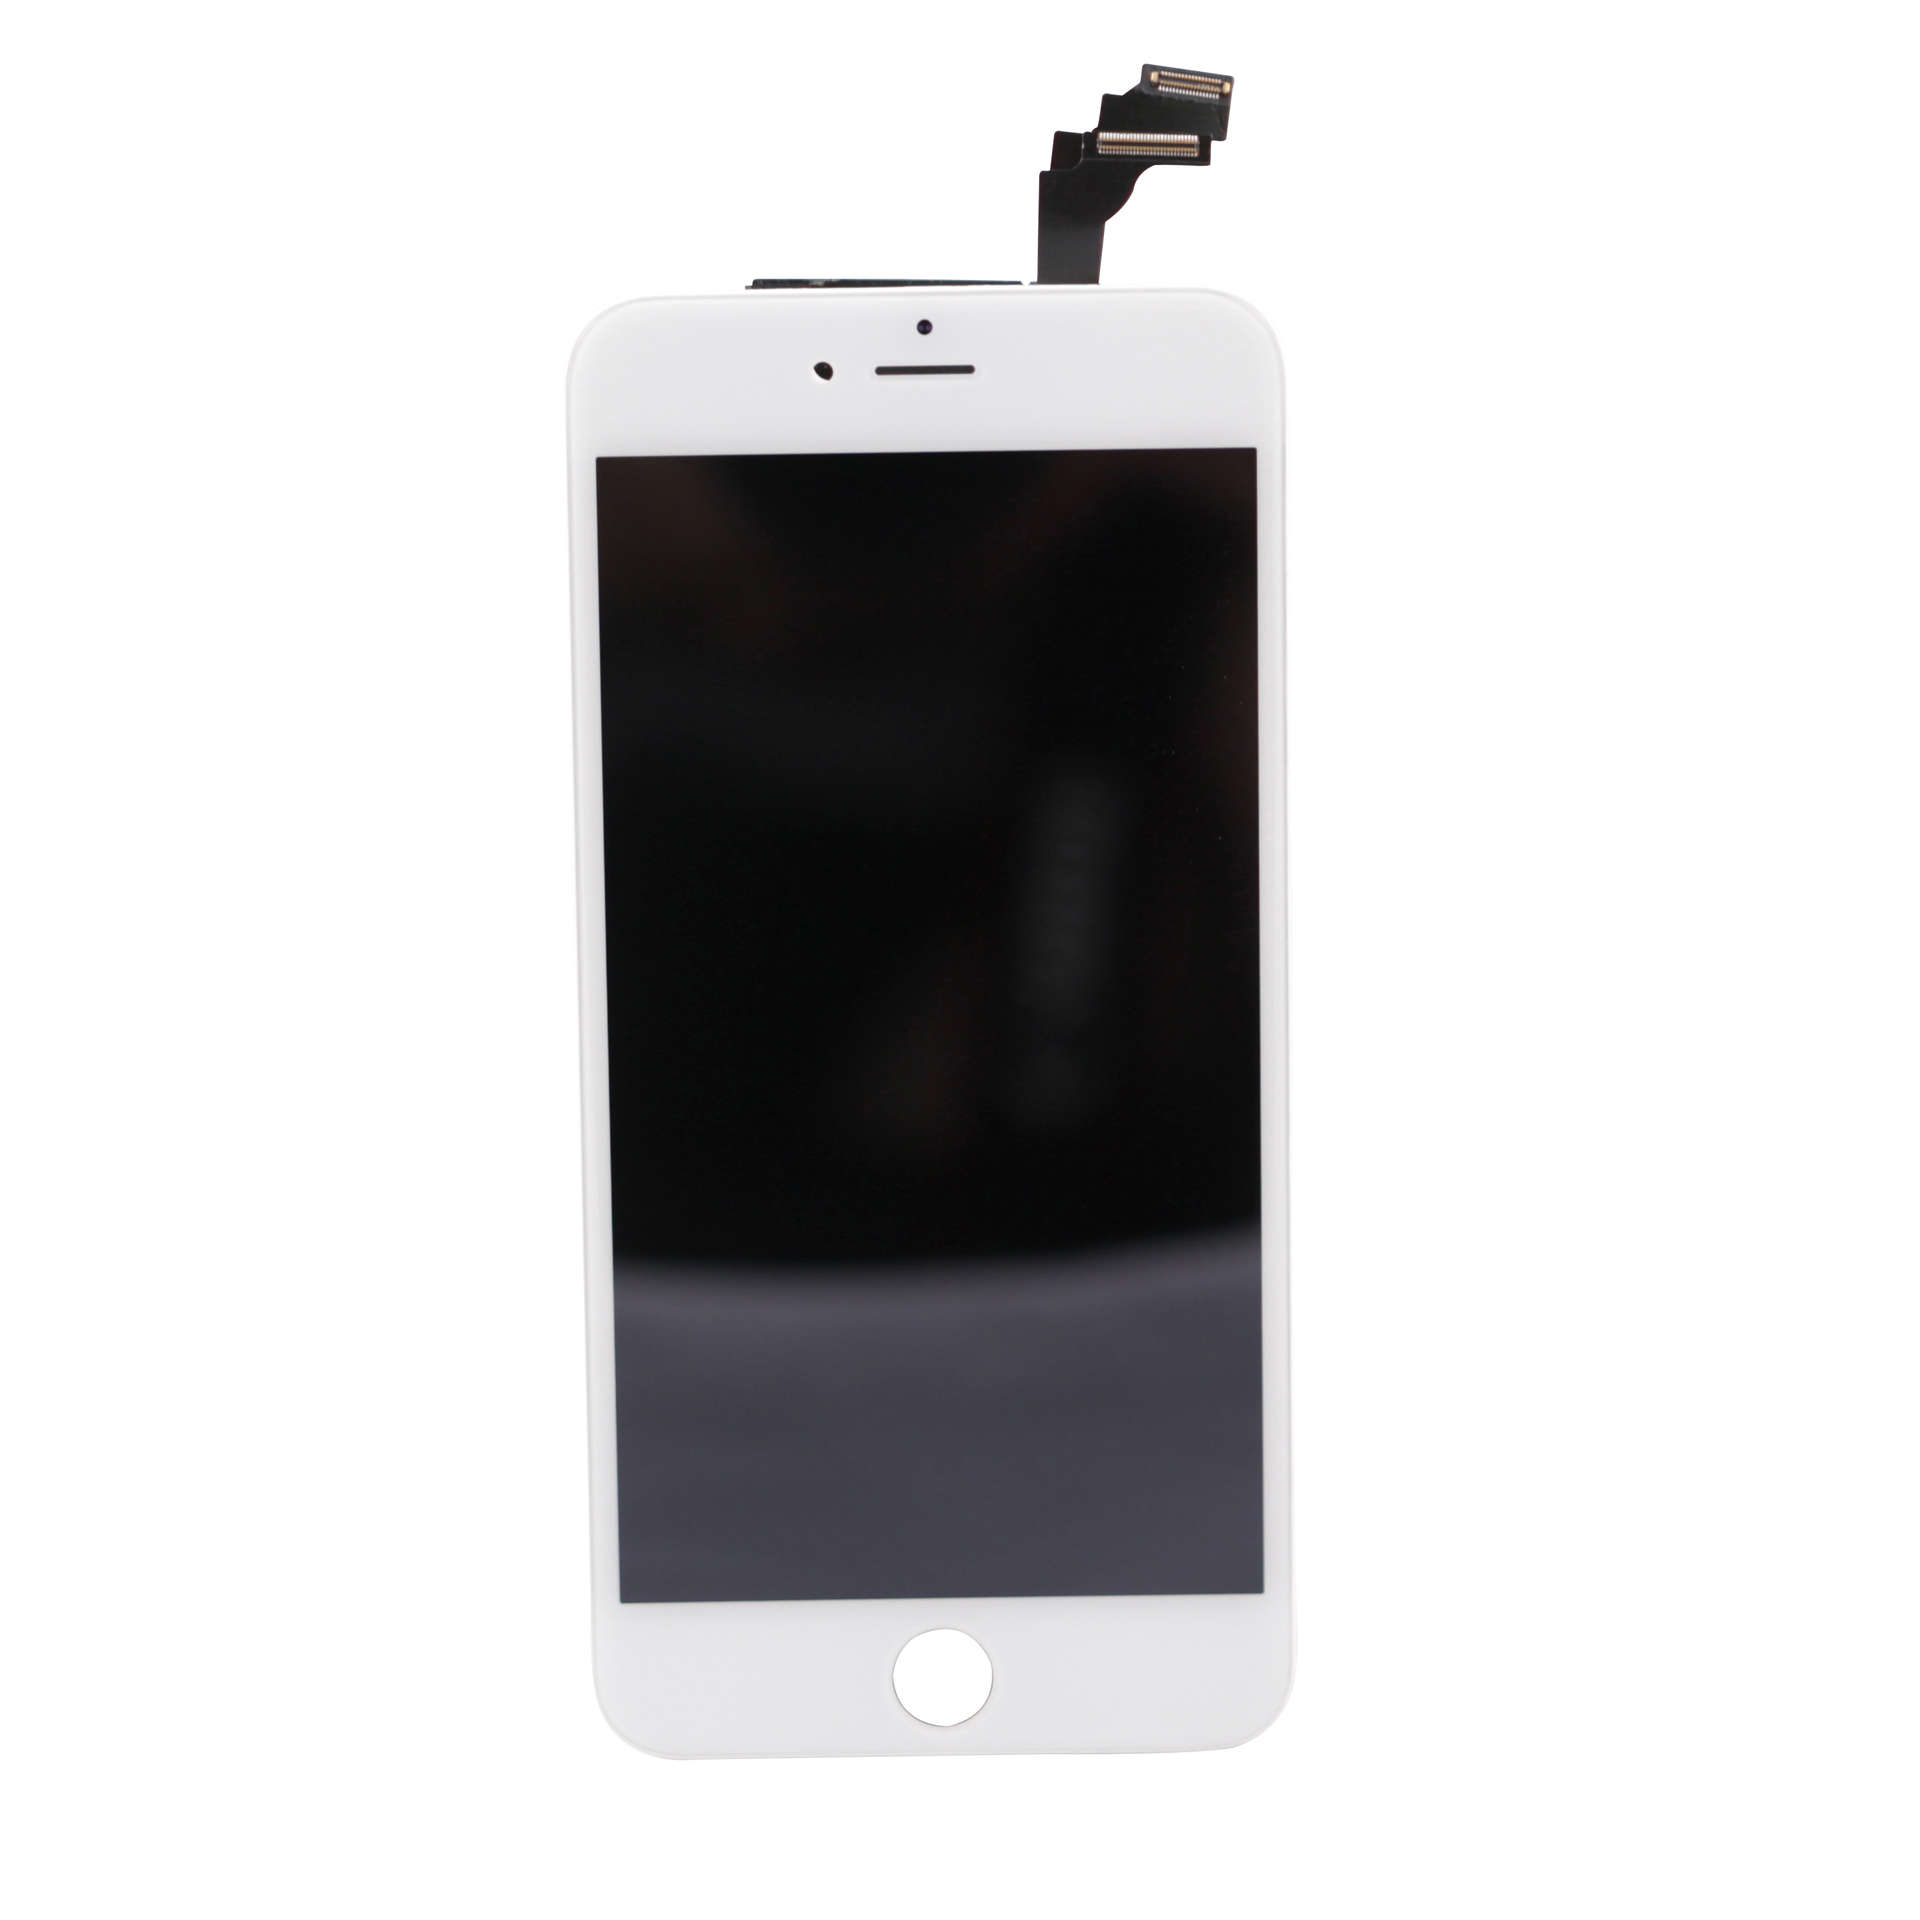 Iphone 7 Light Kit Theunlockr